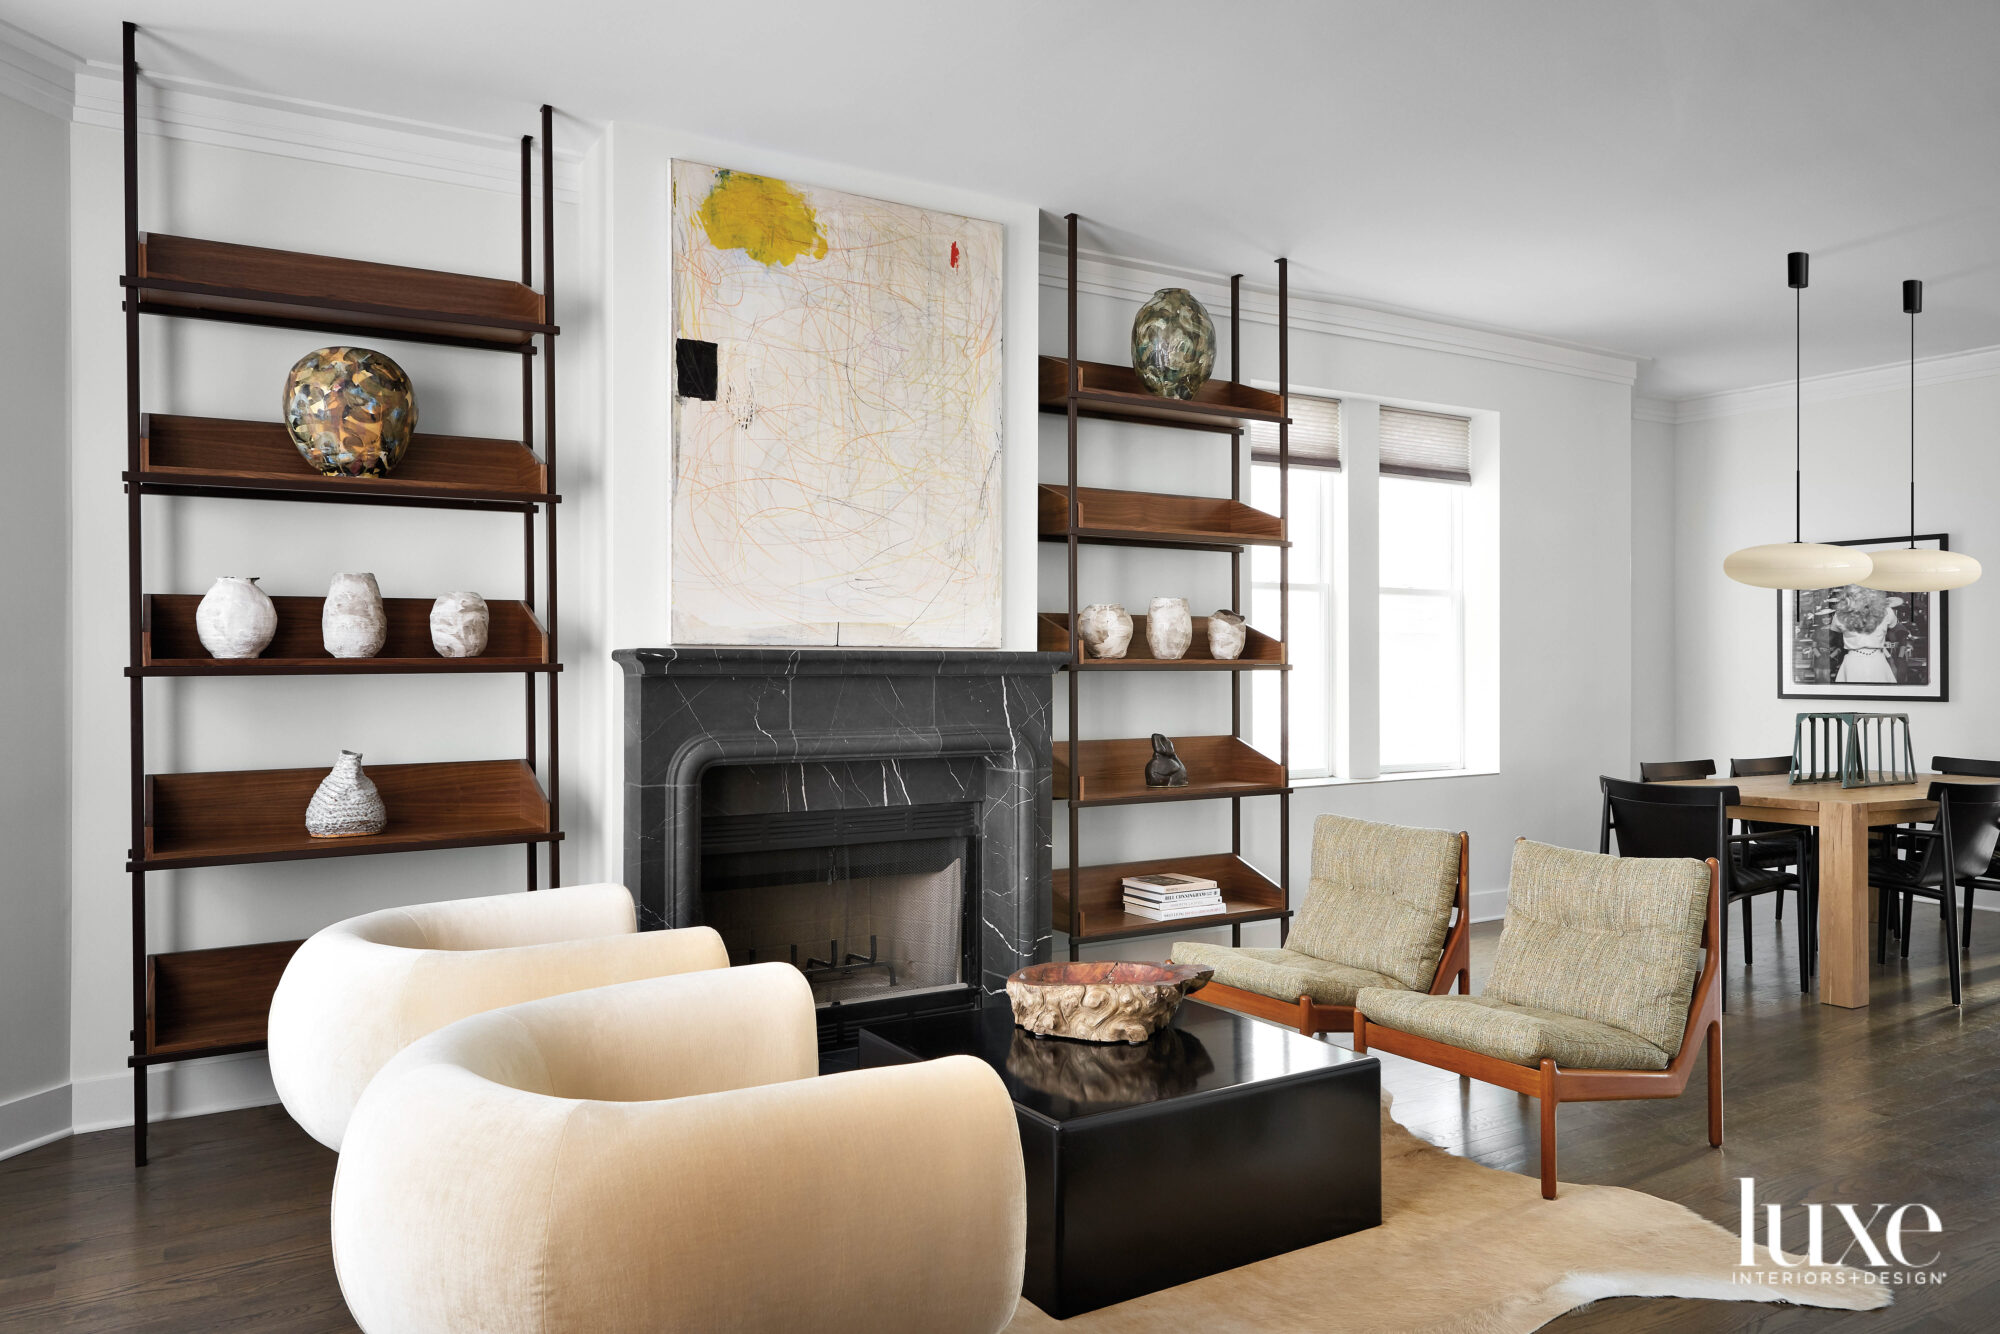 When A Chicago Designer Is Inspired By His Stylish Client, Unforgettable Design Emerges